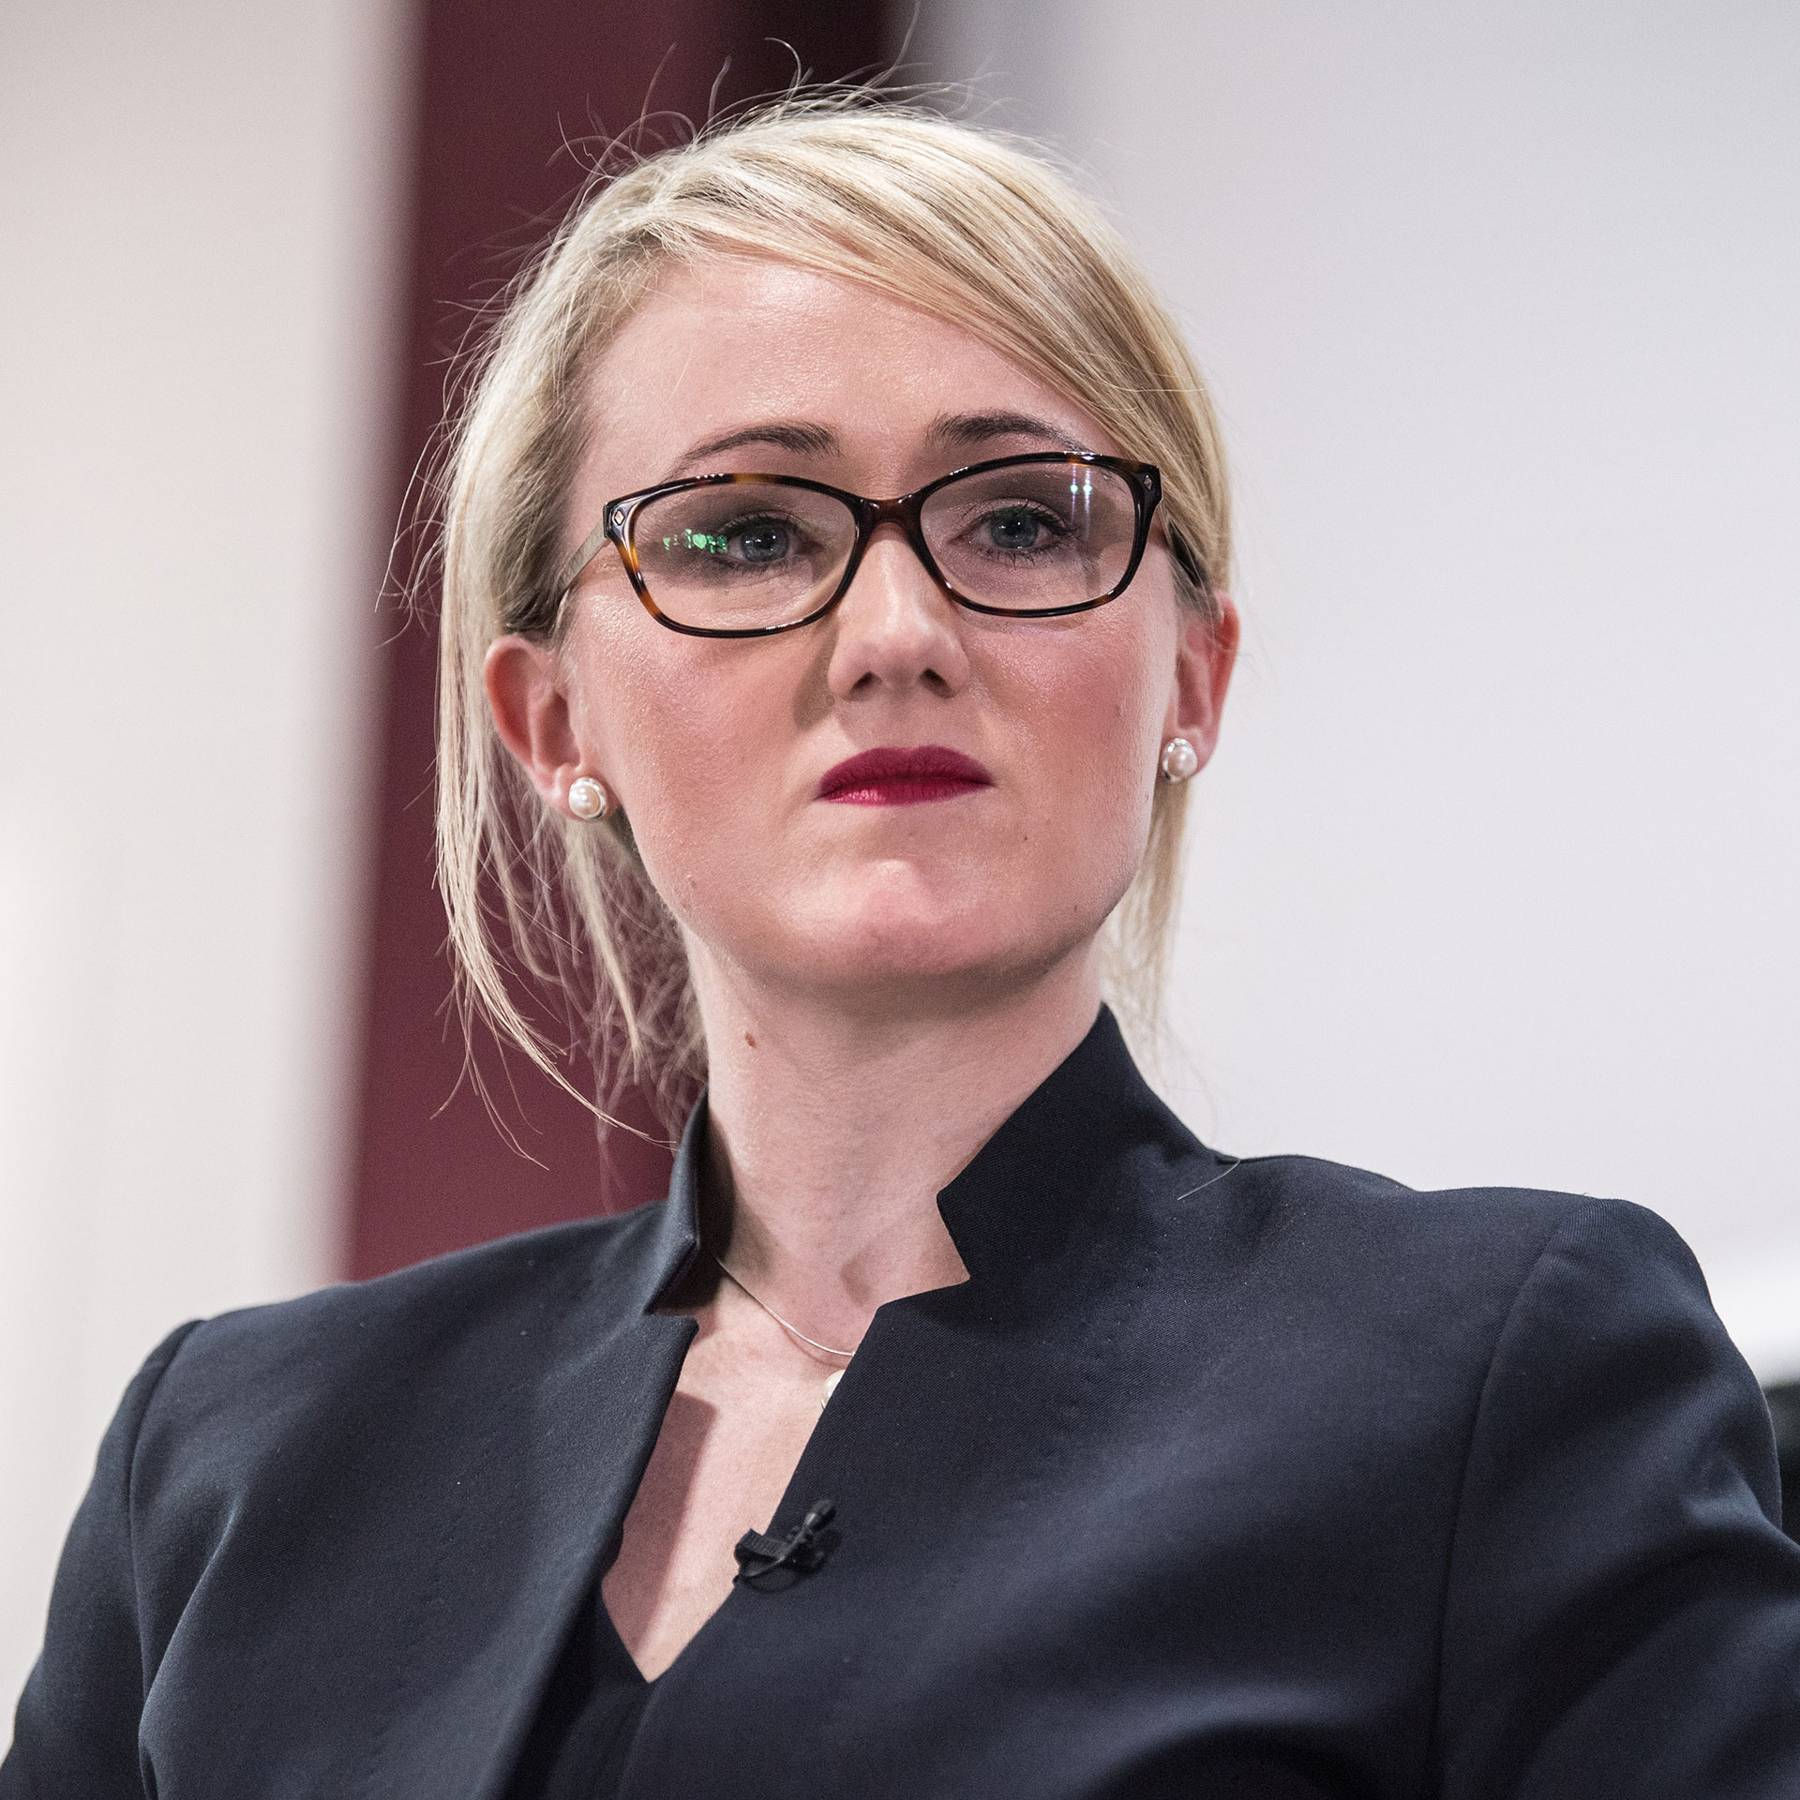 Is Rebecca Long-Bailey just another champagne socialist?